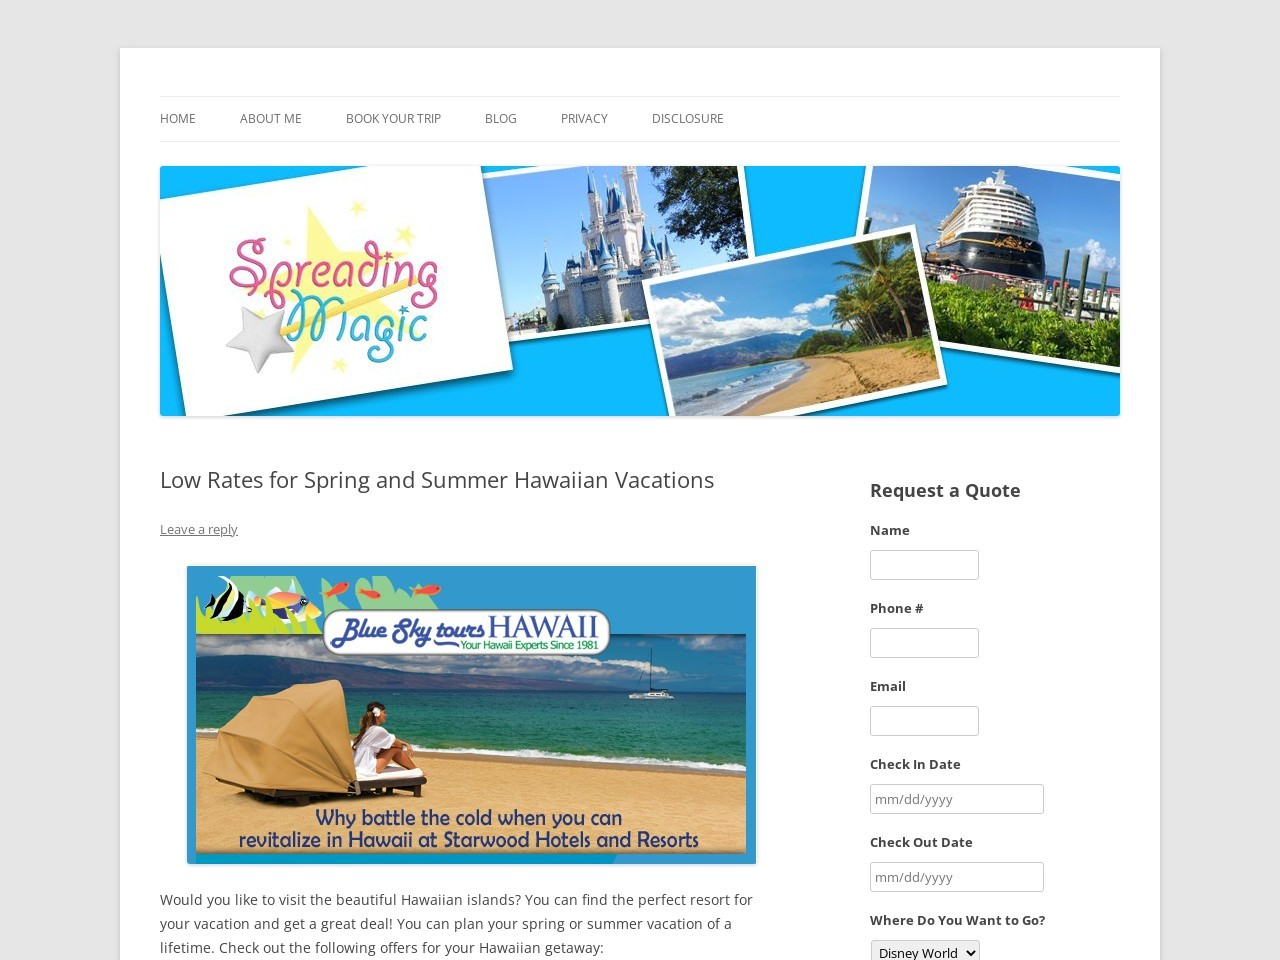 Low Rates for Spring and Summer Hawaiian Vacations